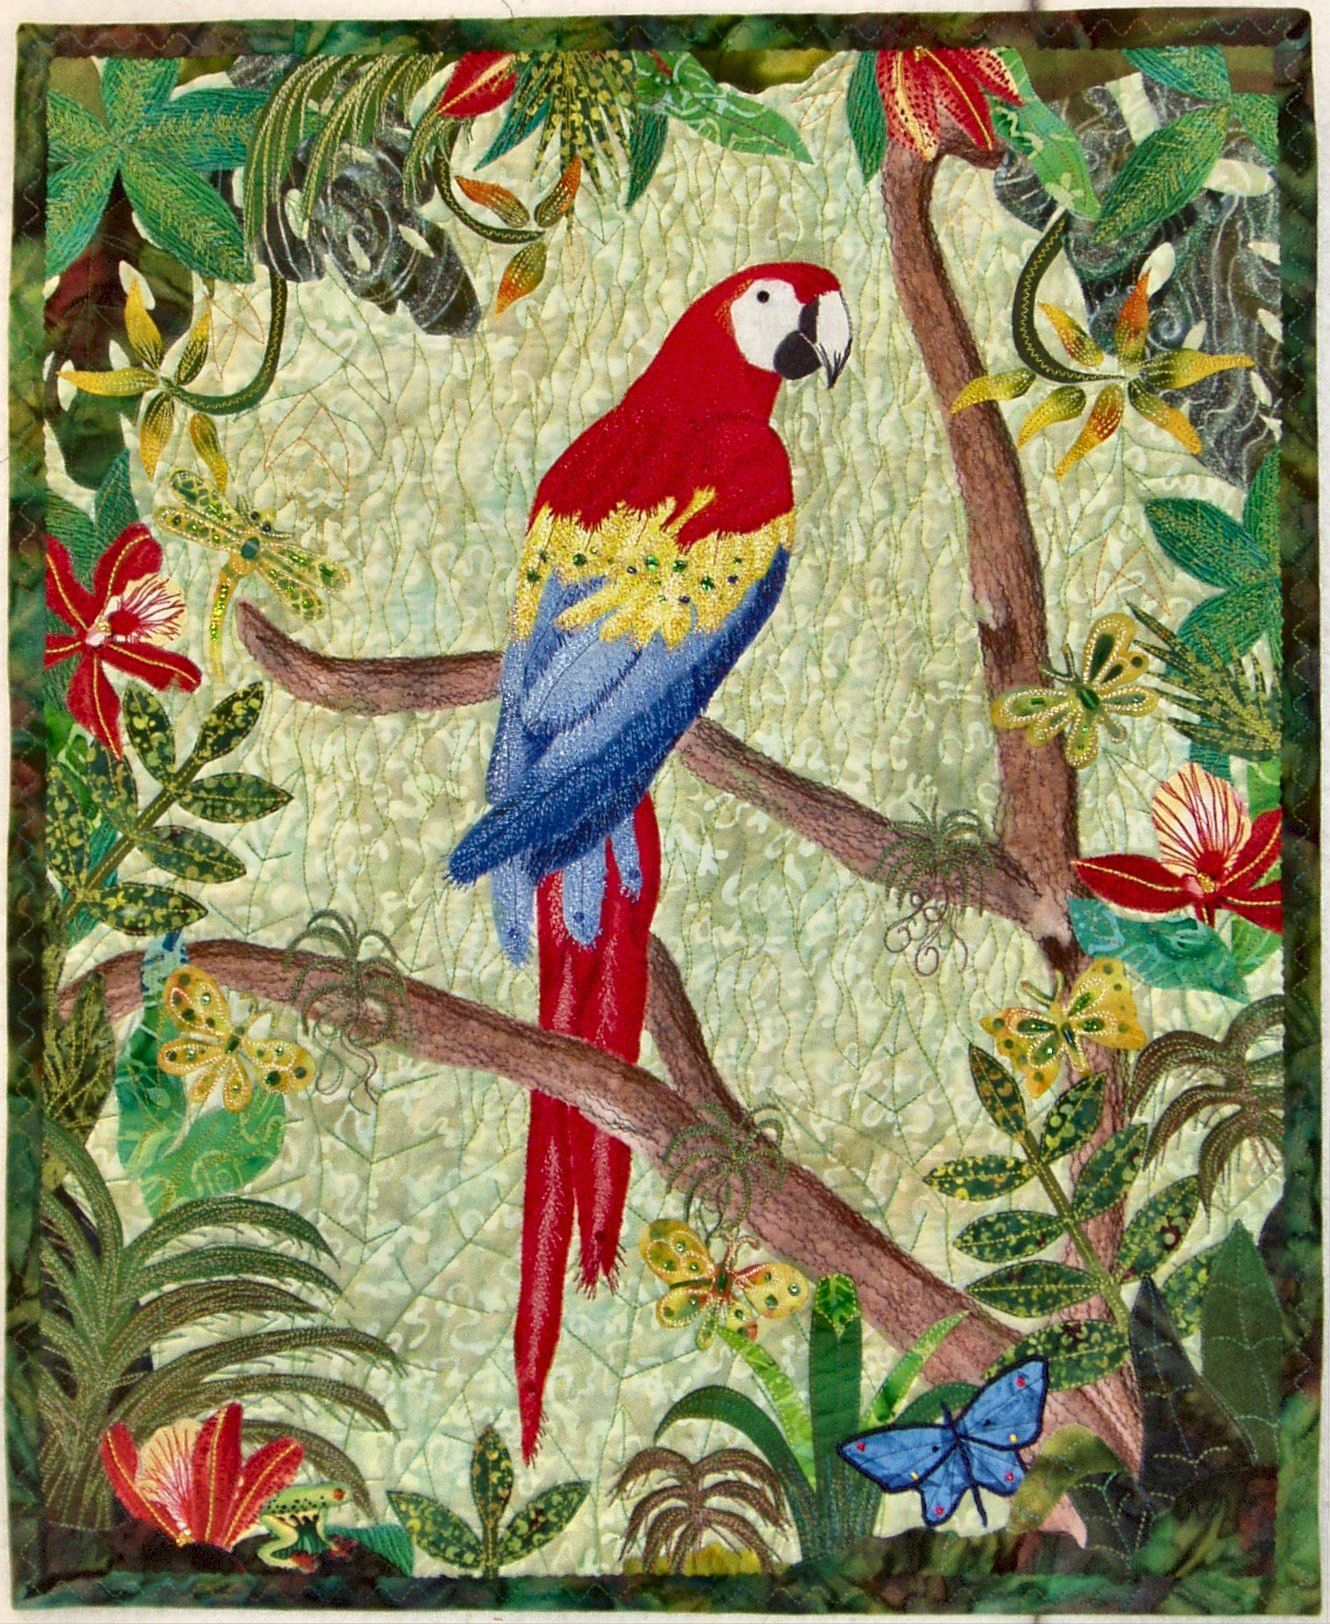 """Scarlet Macaw in a Tropical Forest, 18"""" x 22"""", by Georgia Heller (2005)"""